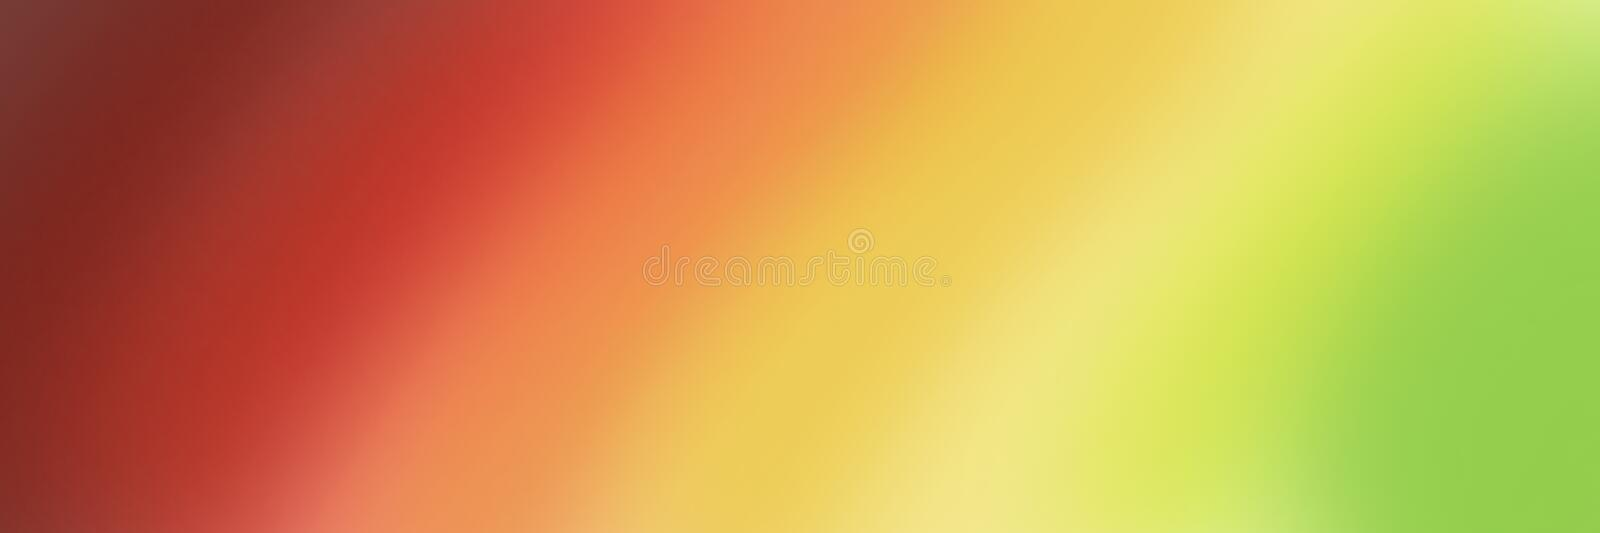 Large abstract banner in gradient shades of red yellow and green royalty free stock images